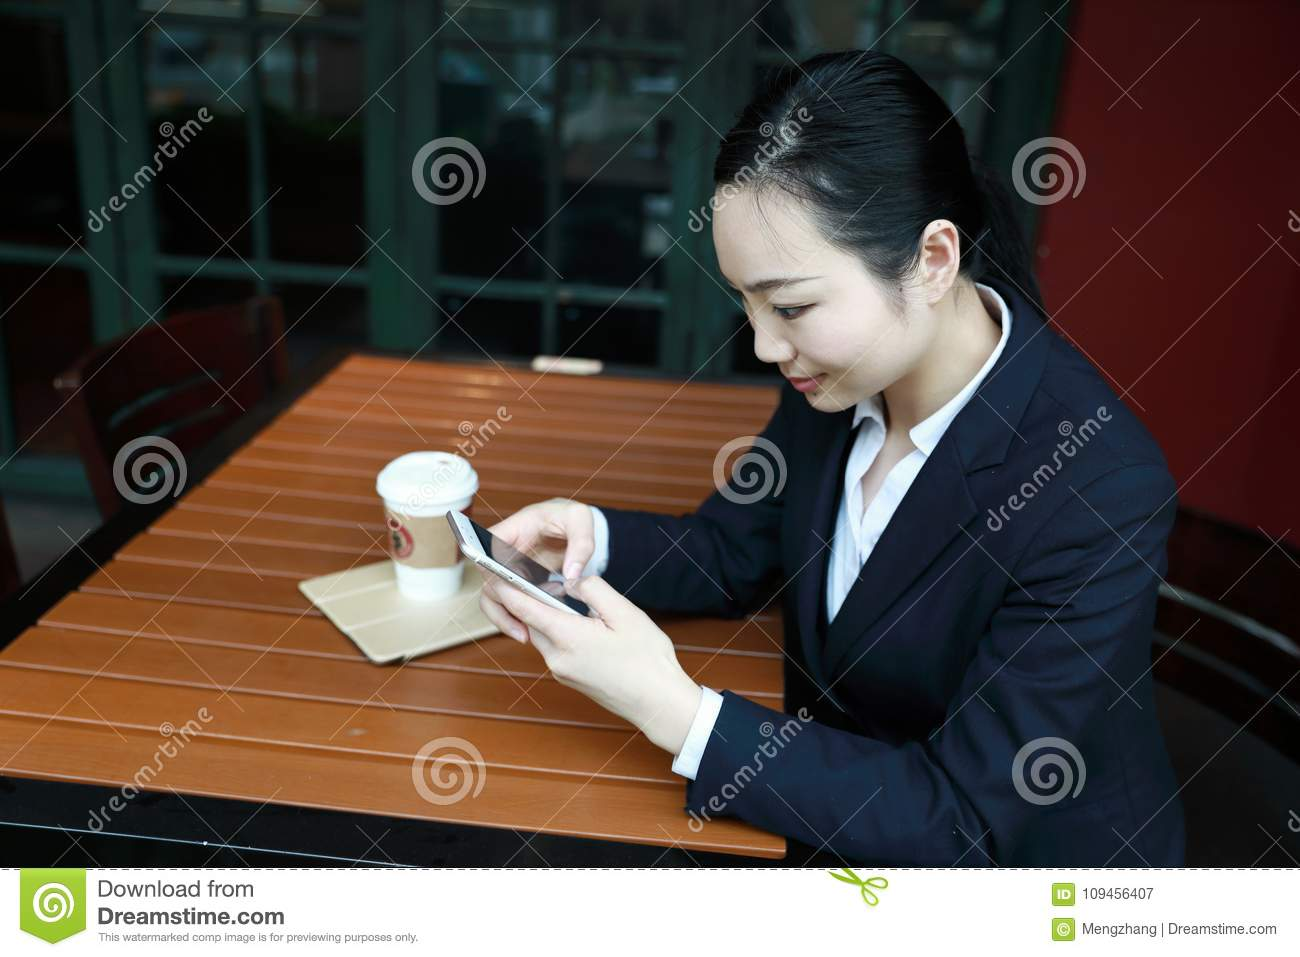 Young woman sitting in coffee shop at wooden table, drinking coffee and using smartphone.On table is laptop